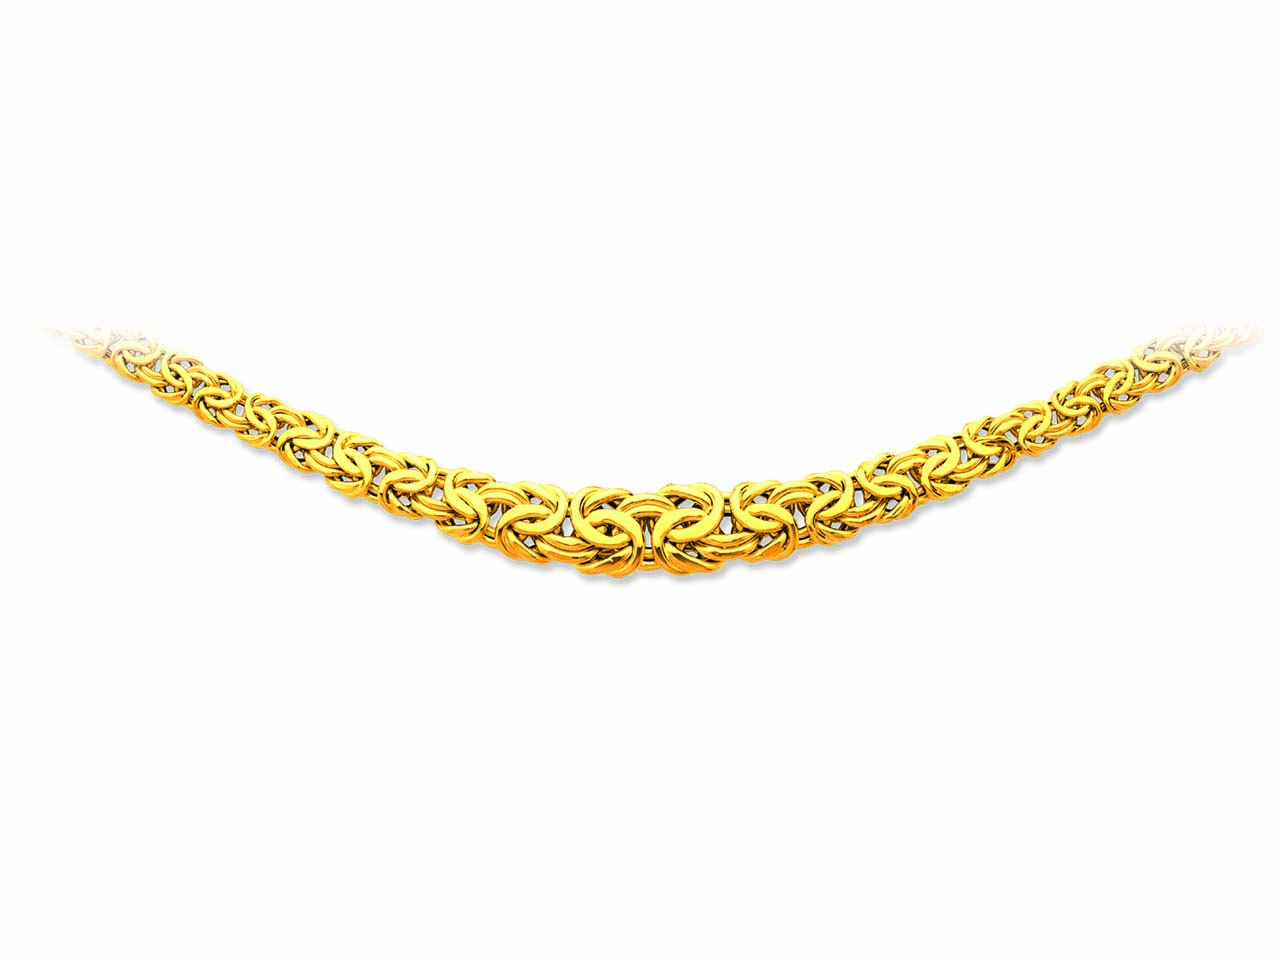 Collier maille royale plate chute, Or jaune 18k, 13,3 mm, 45 cm